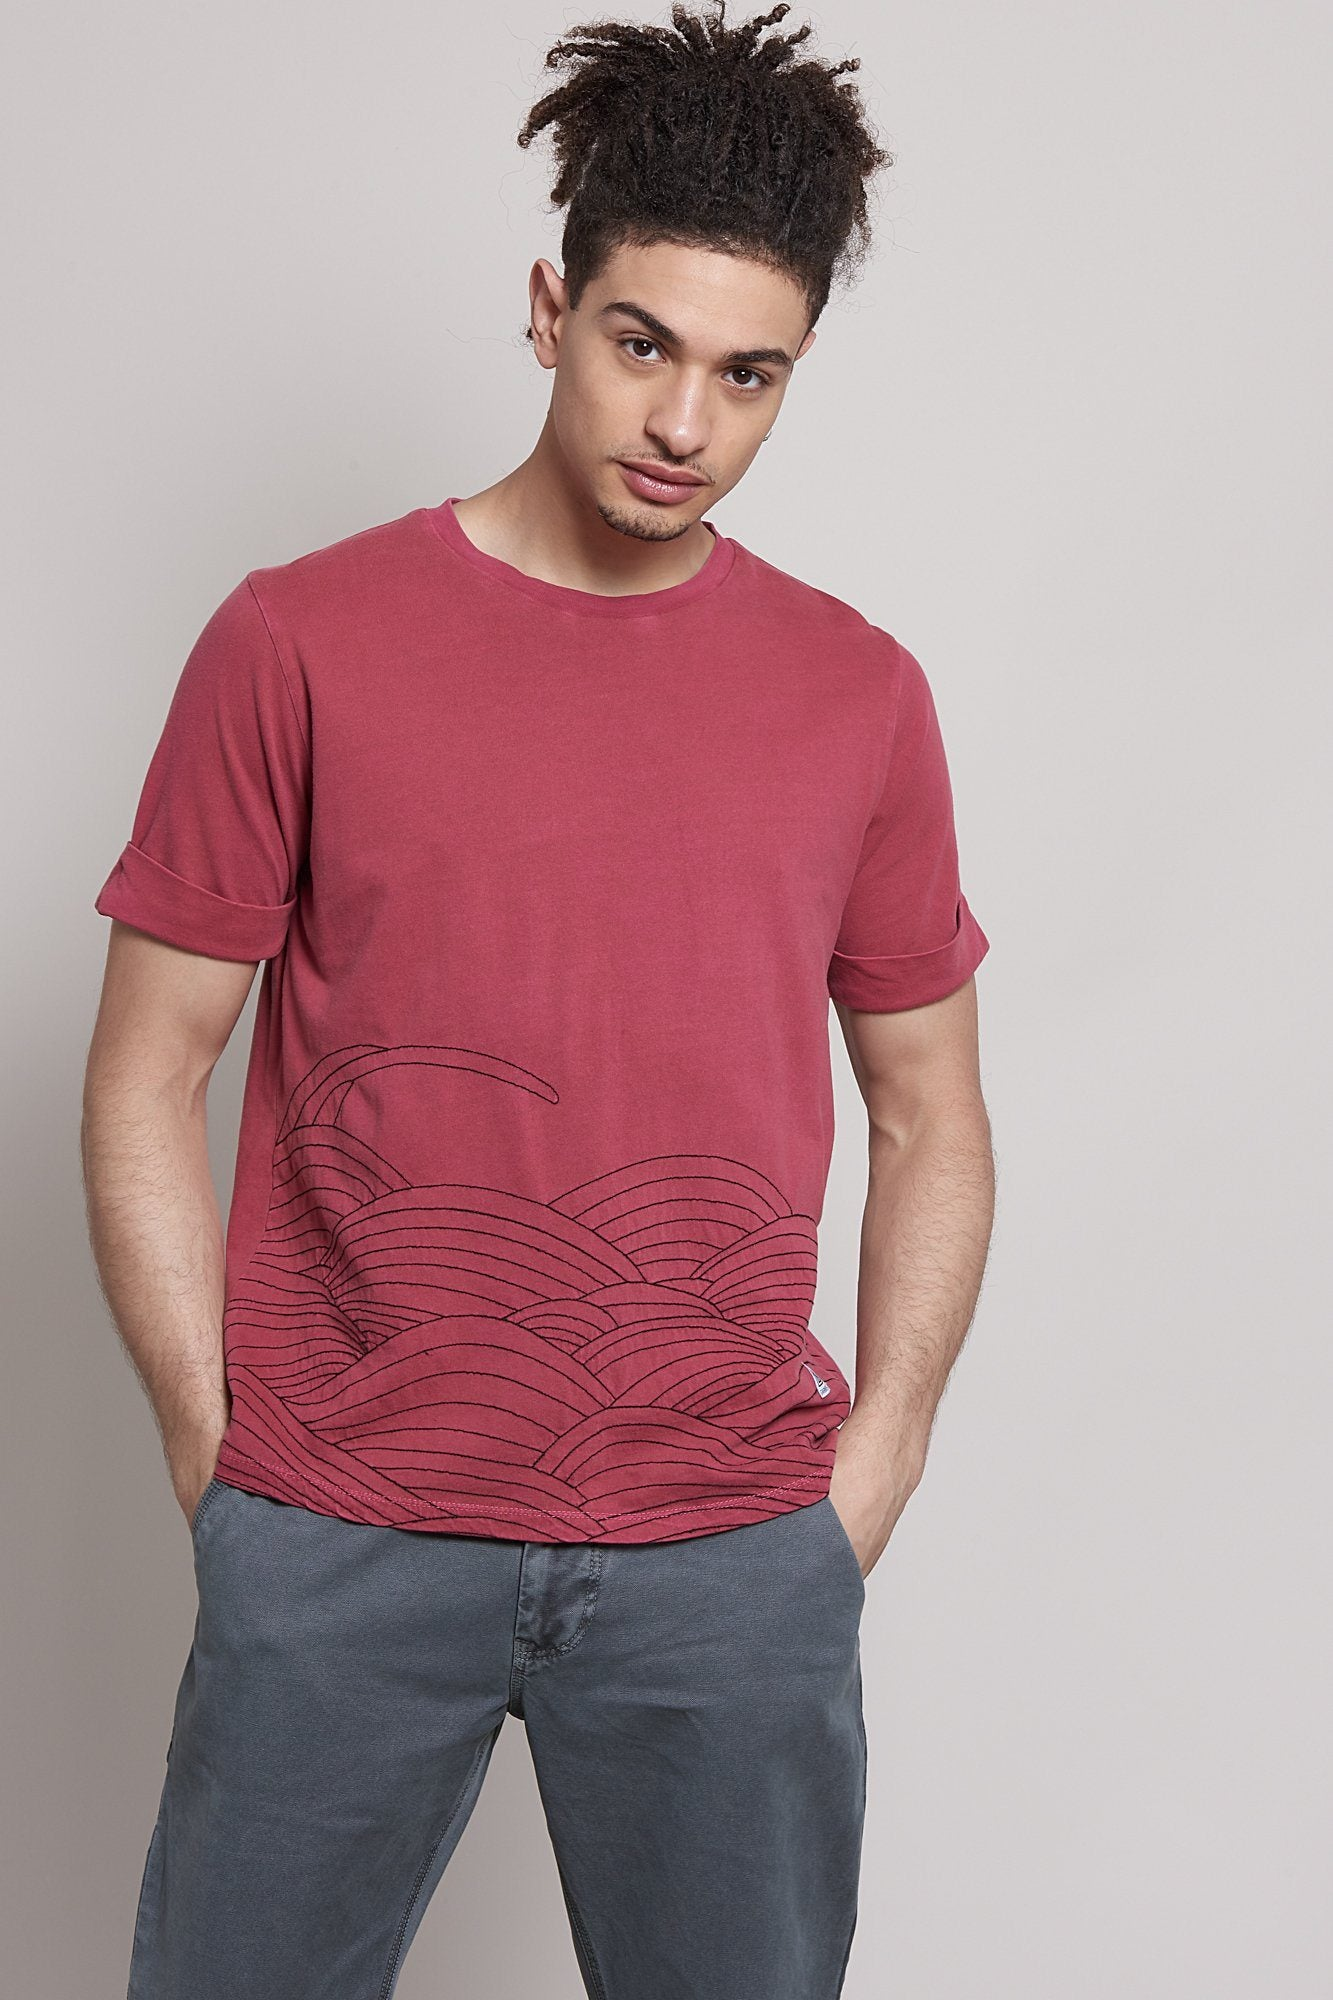 T-Shirt - SASHIKO Embroidery Organic Cotton T-Shirt Burnt Red